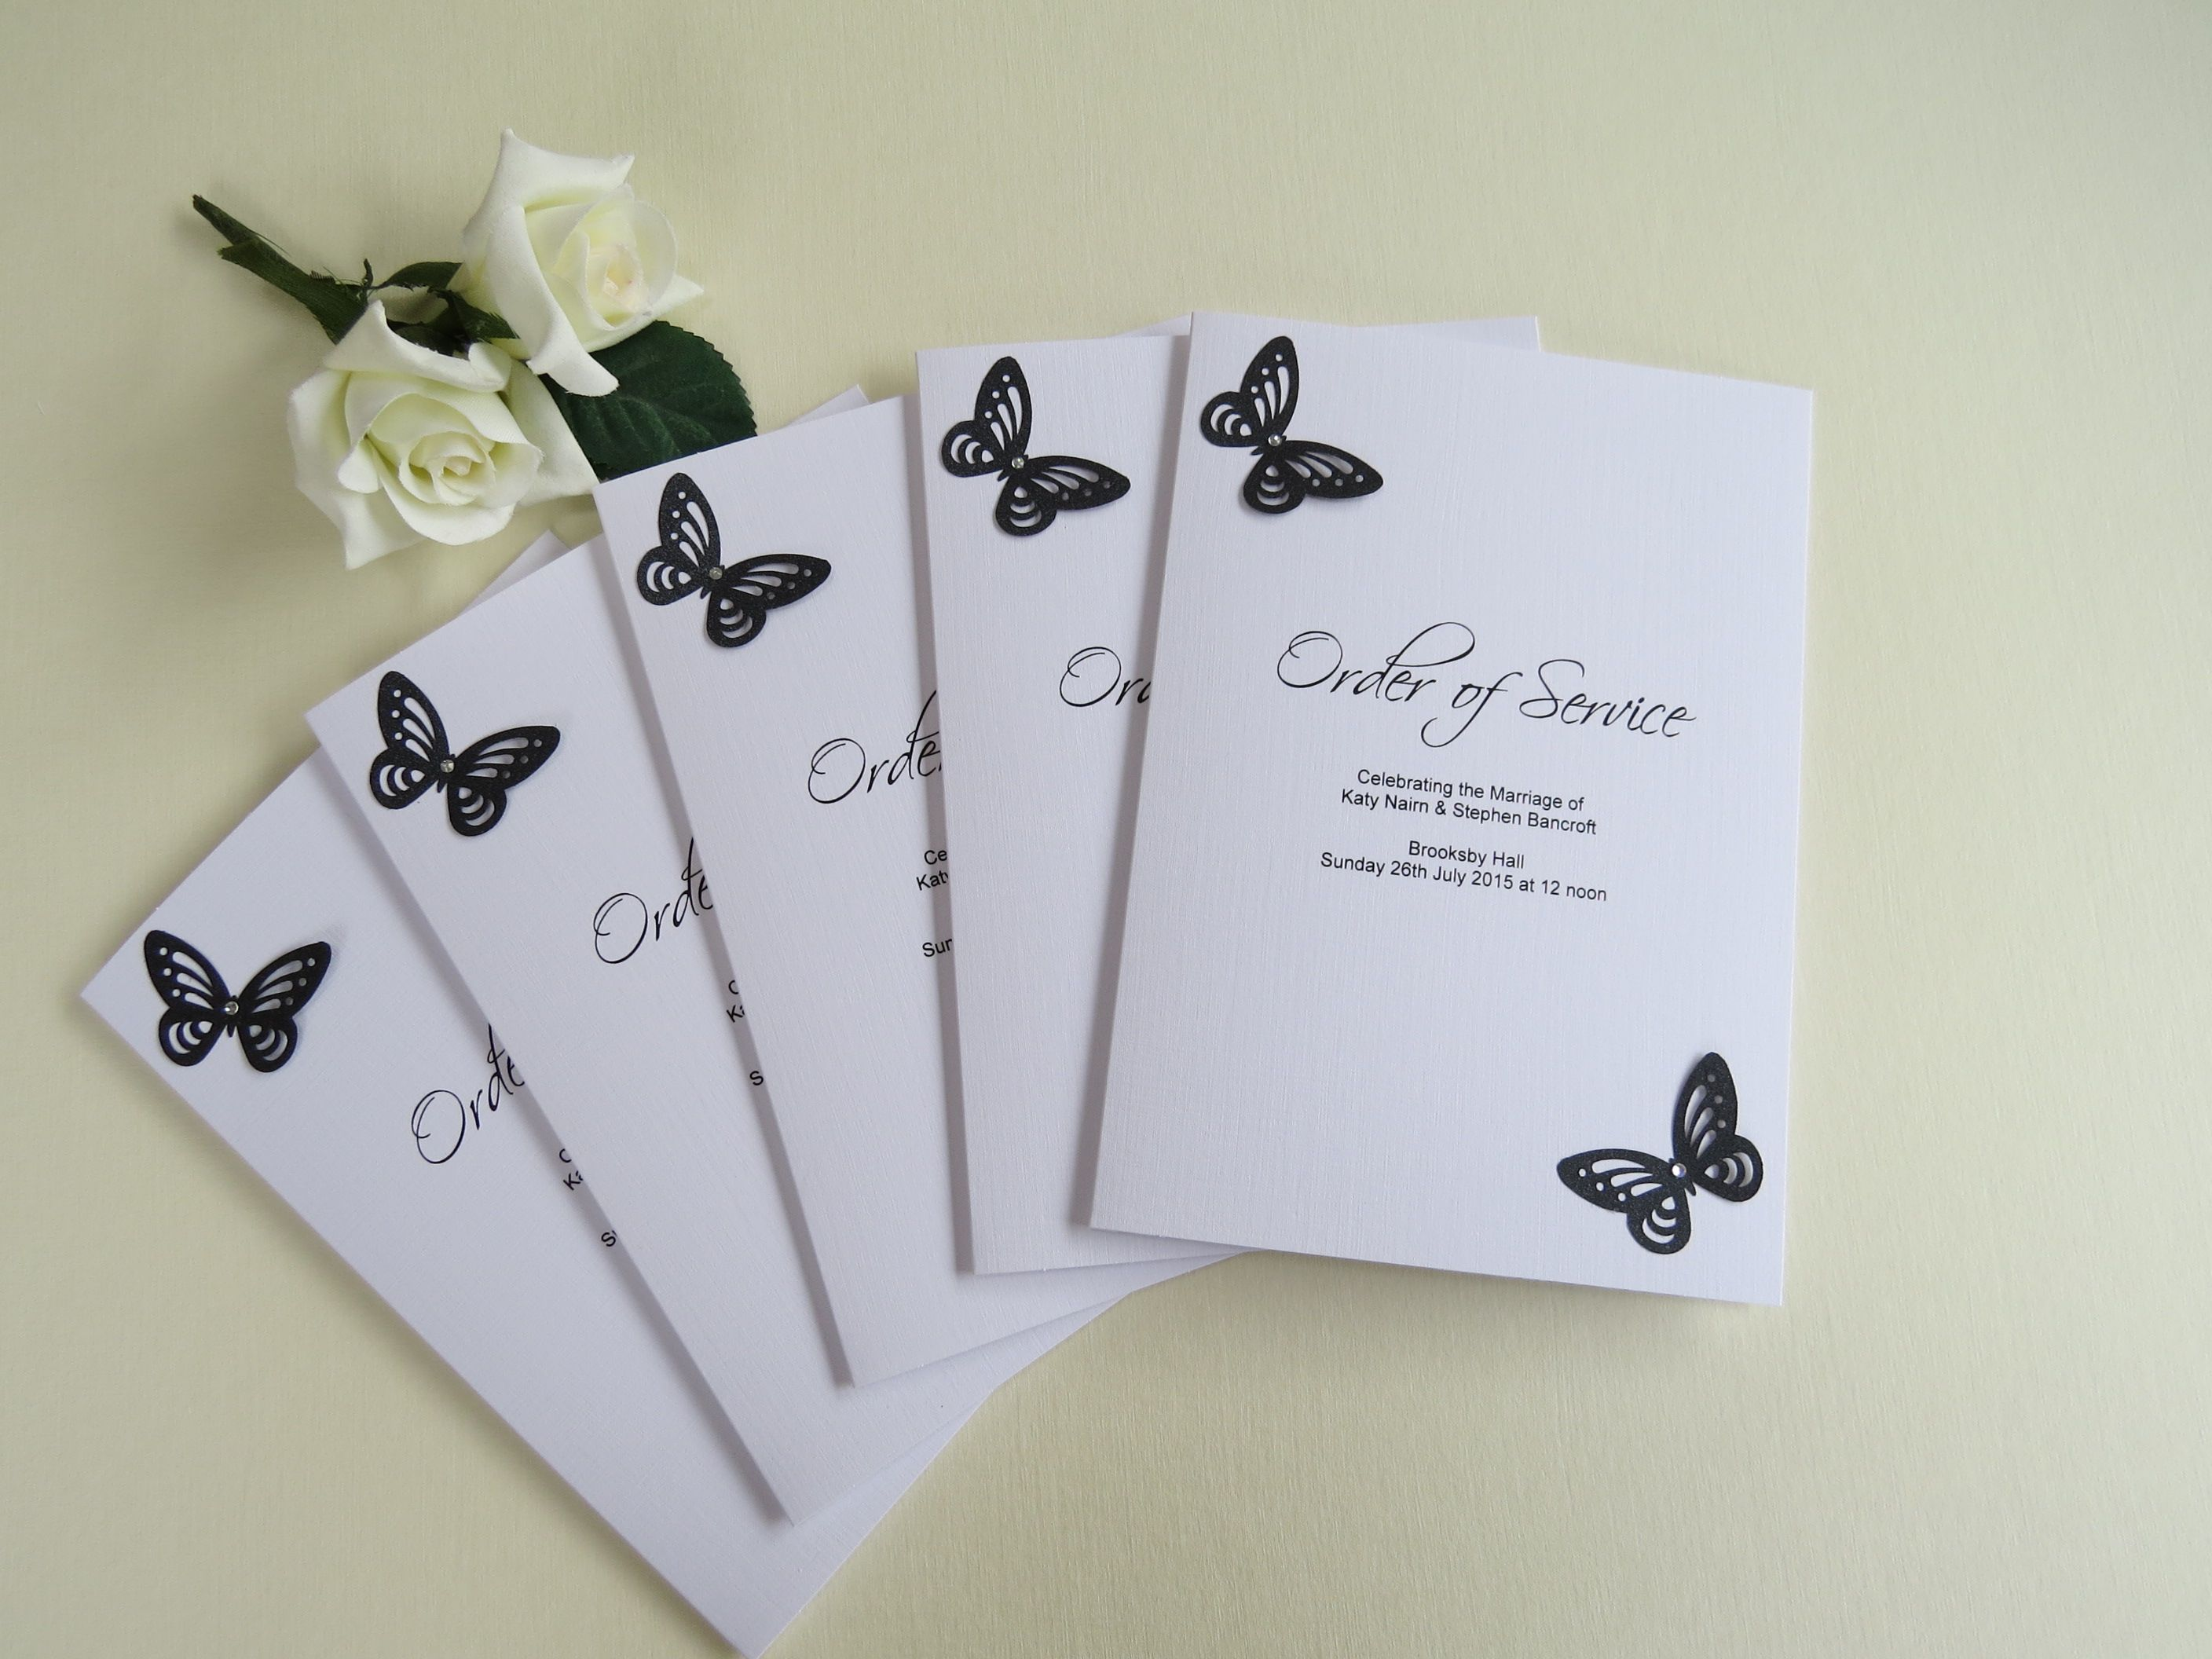 Butterfly order of service | Butterfly Stationery | Pinterest ...